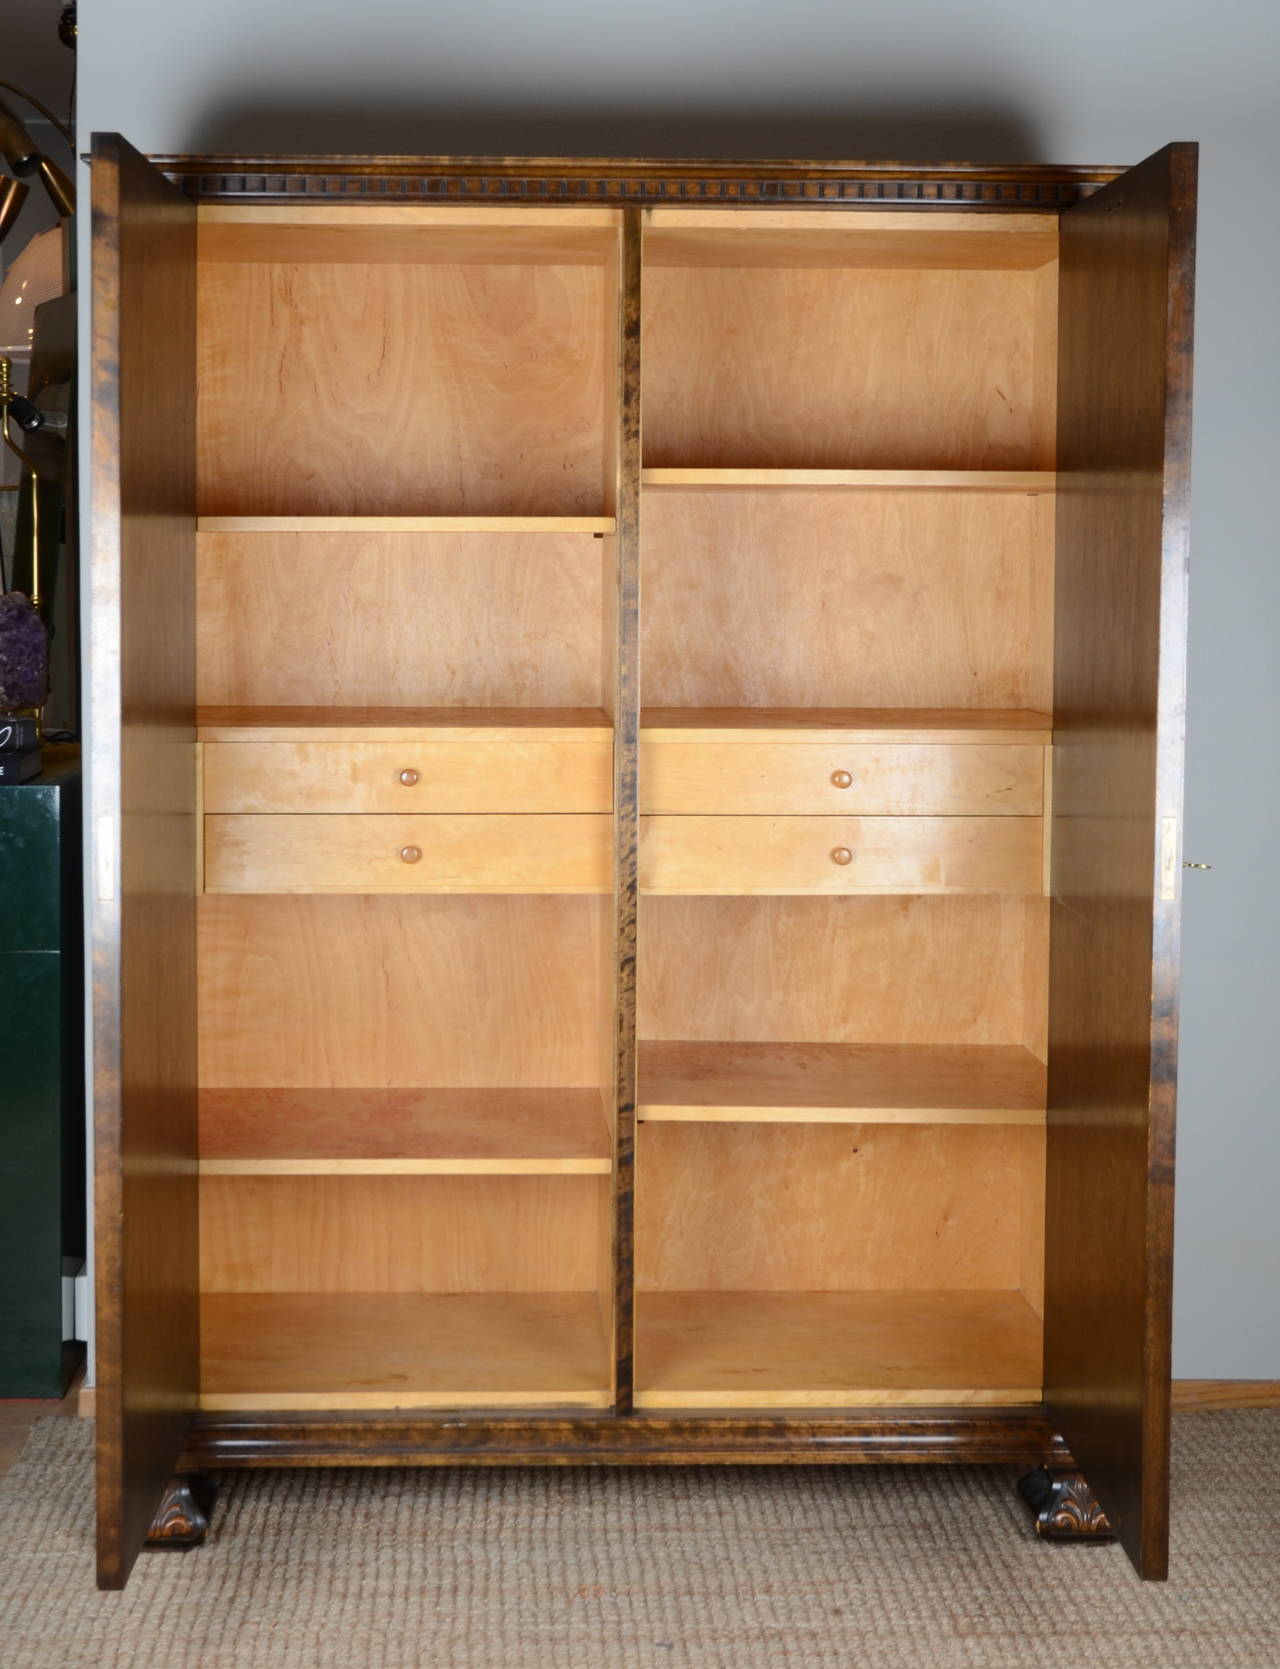 "Swedish Axel Einar Hjorth, Cabinet ""Roma"" in Stained Birch, Bodafors, Sweden, 1920s For Sale"